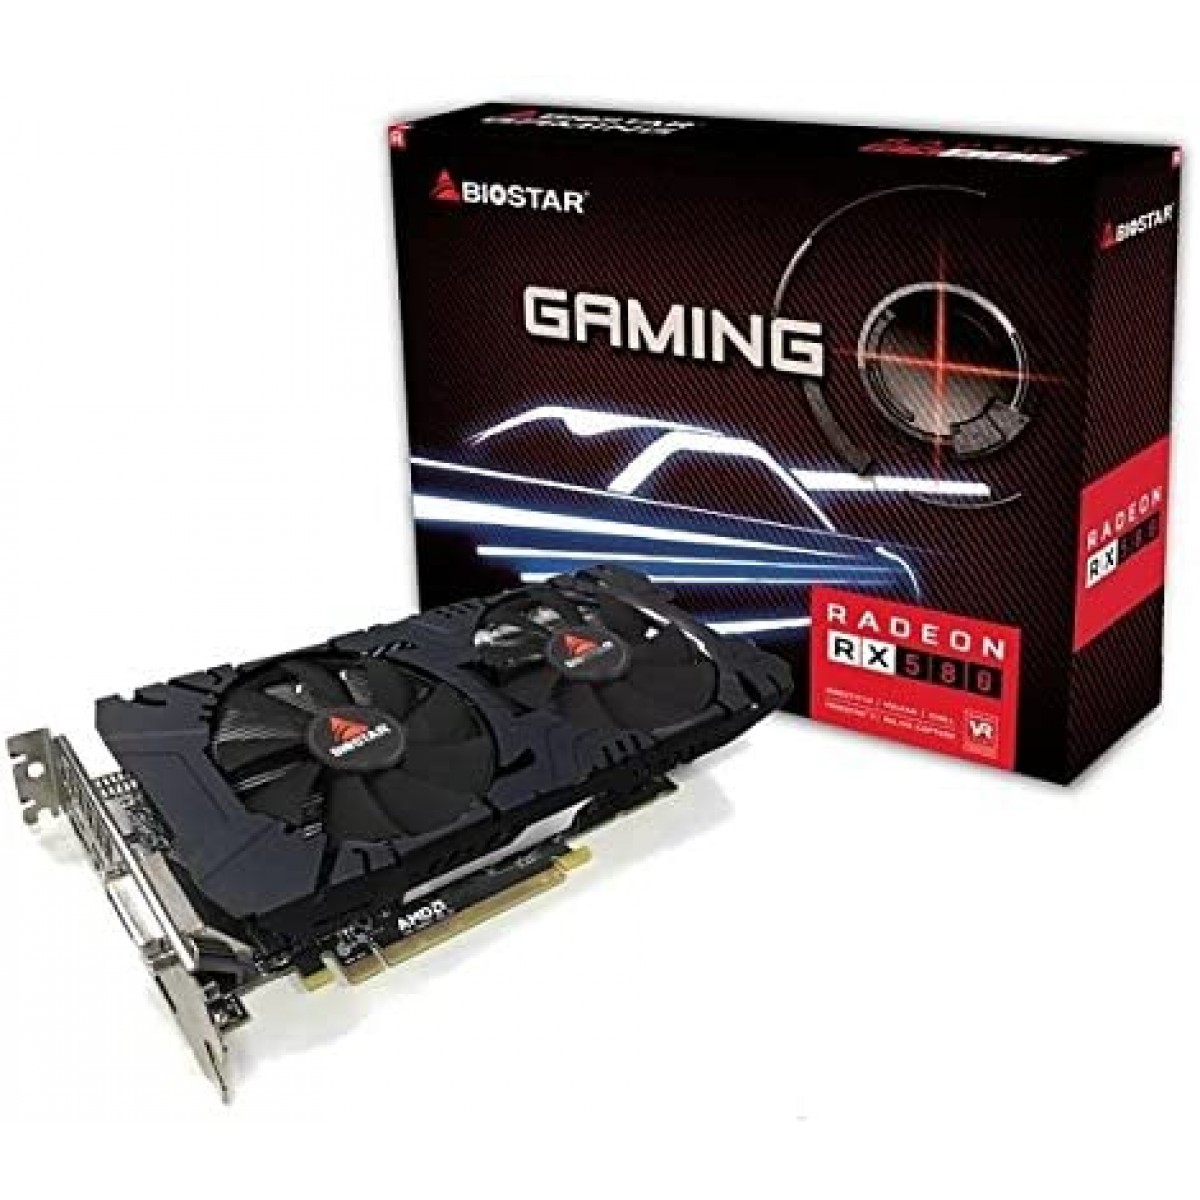 Placa de Video Biostar, Radeon, RX 580, 8GB, GDDR5, 256Bit, VA5805RV82-TBSRH-BS2